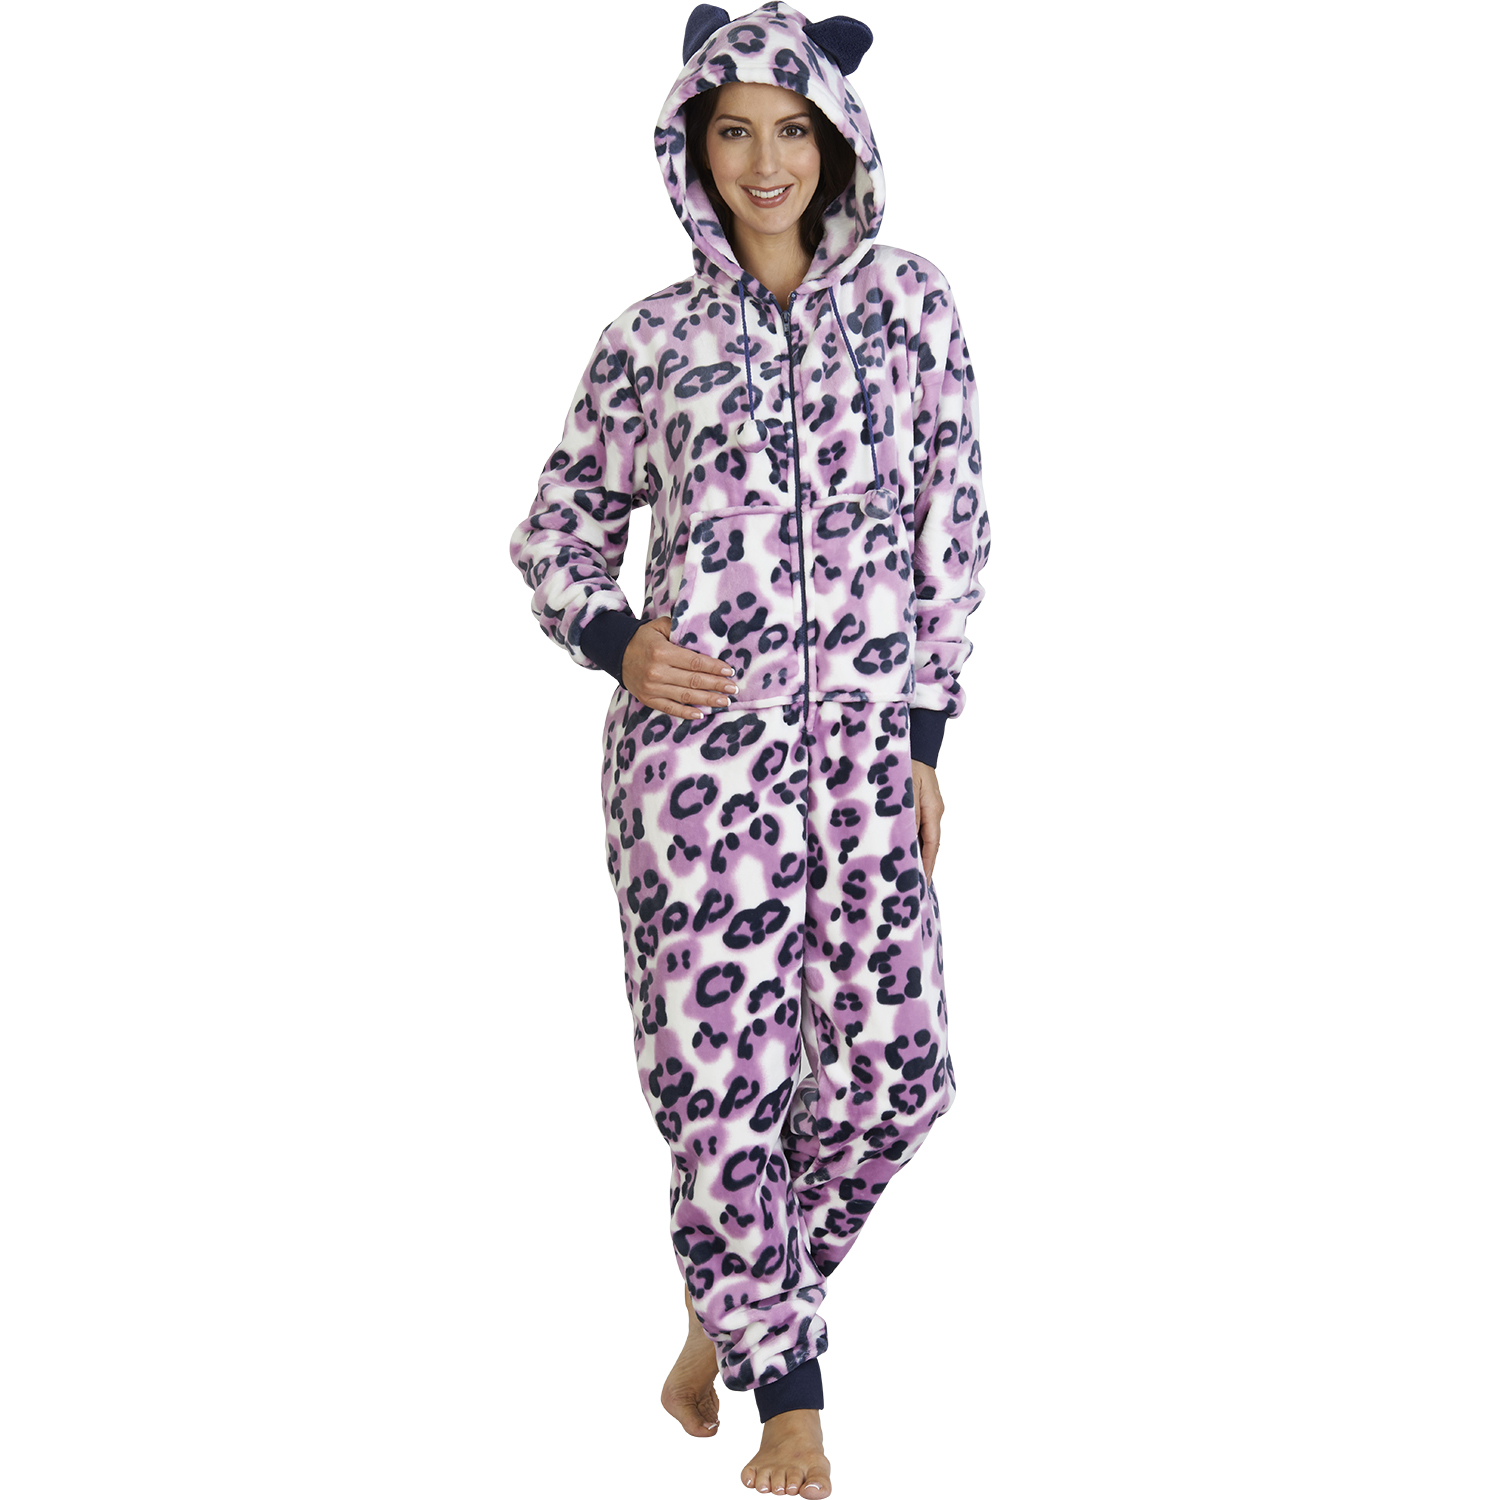 293e440288 Ladies Soft Fleece All In One Suit Womens Cosy Warm Jumpsuit ...